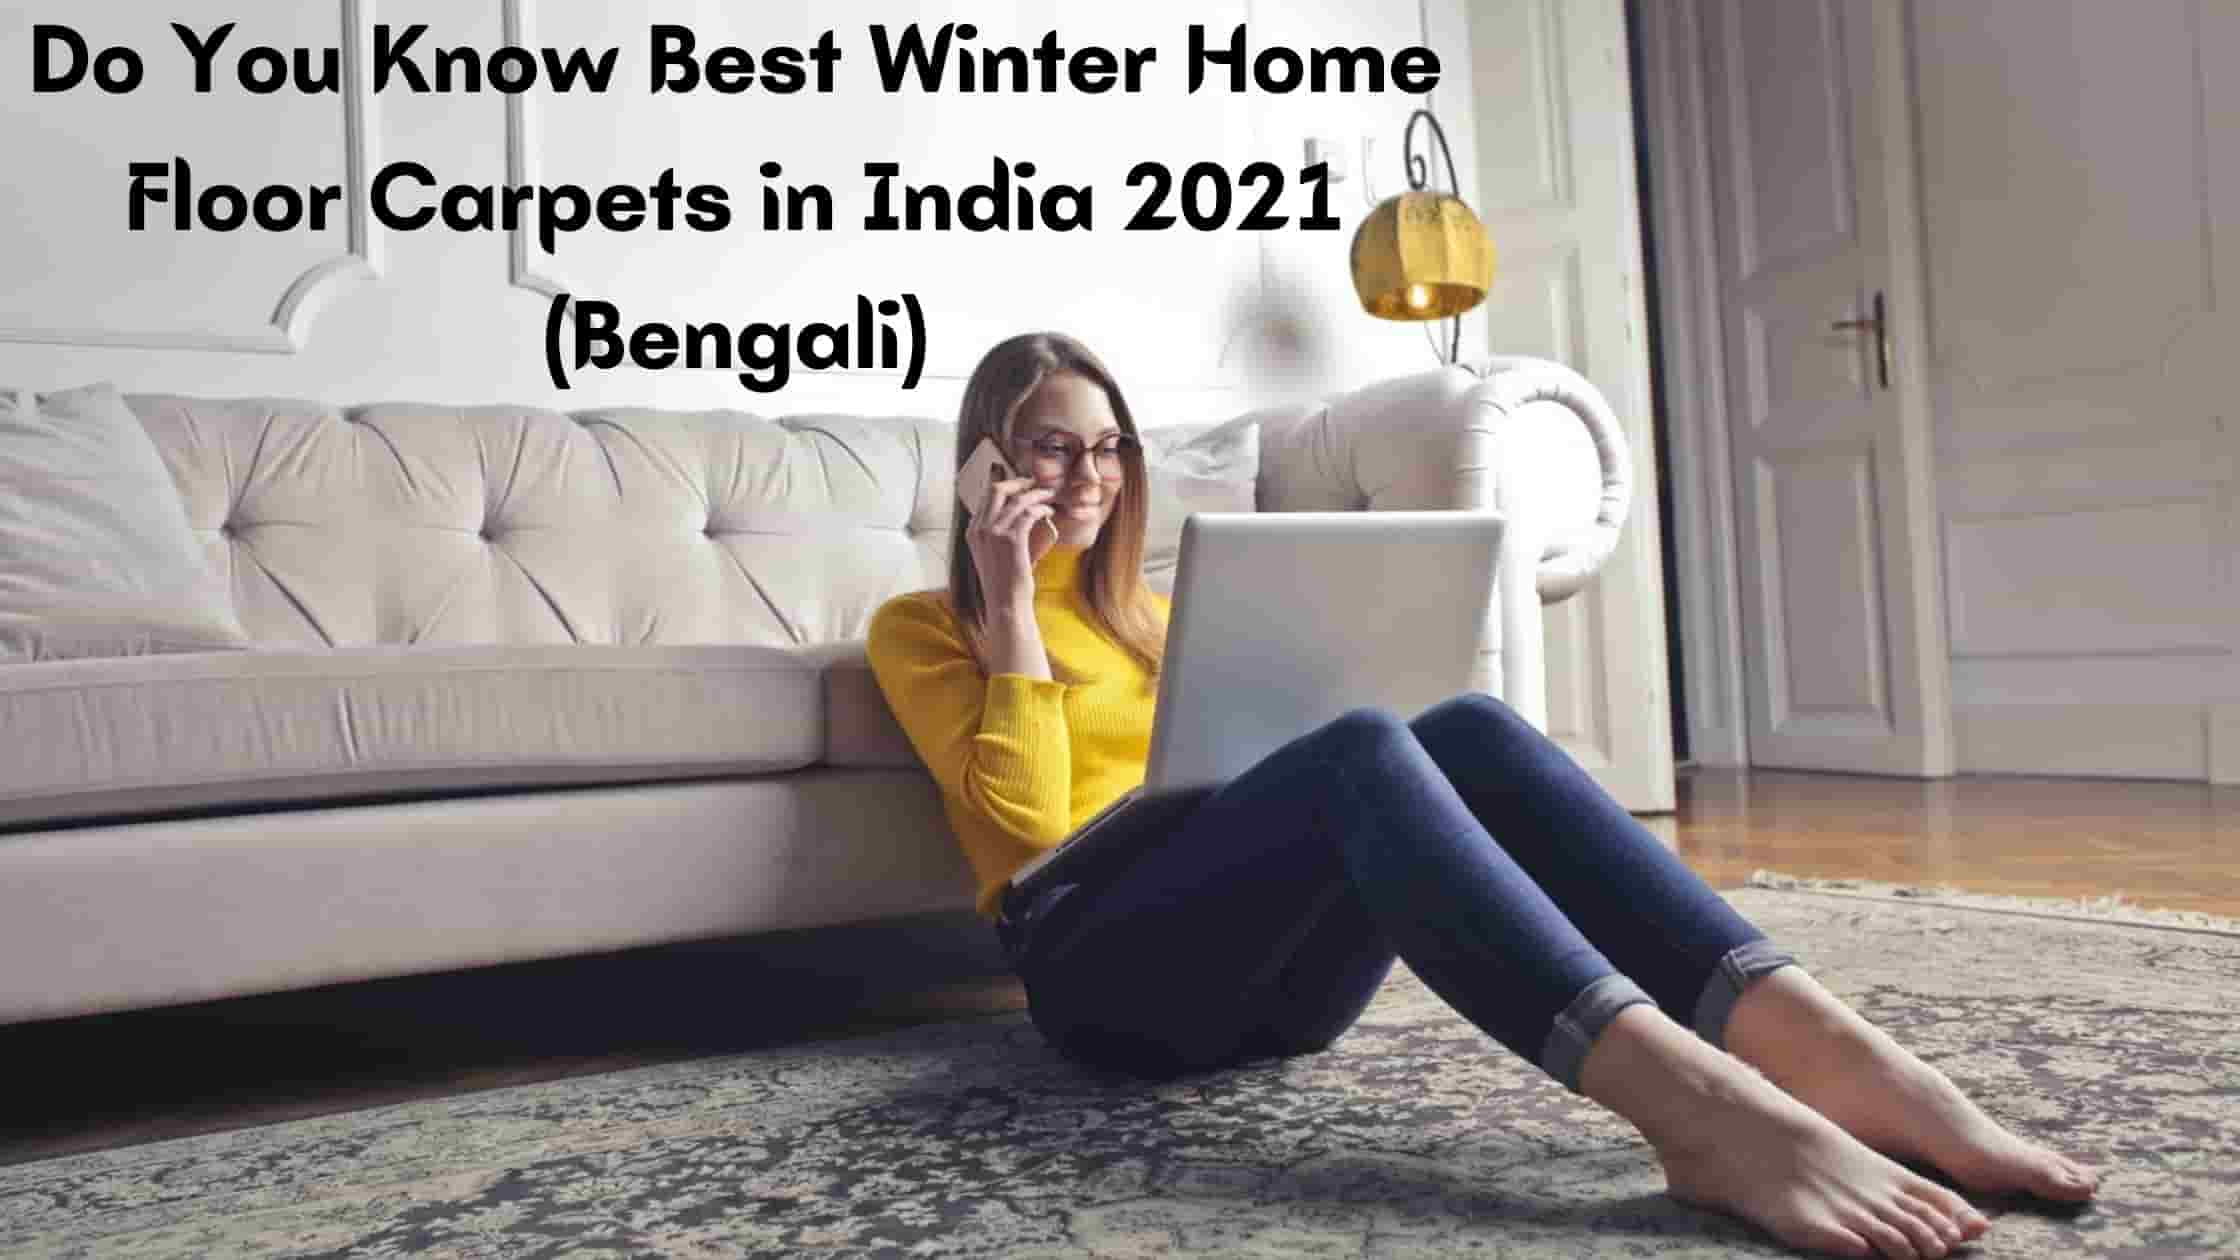 Do You Know Best Winter Home Floor Carpets in India 2021 (Bengali)